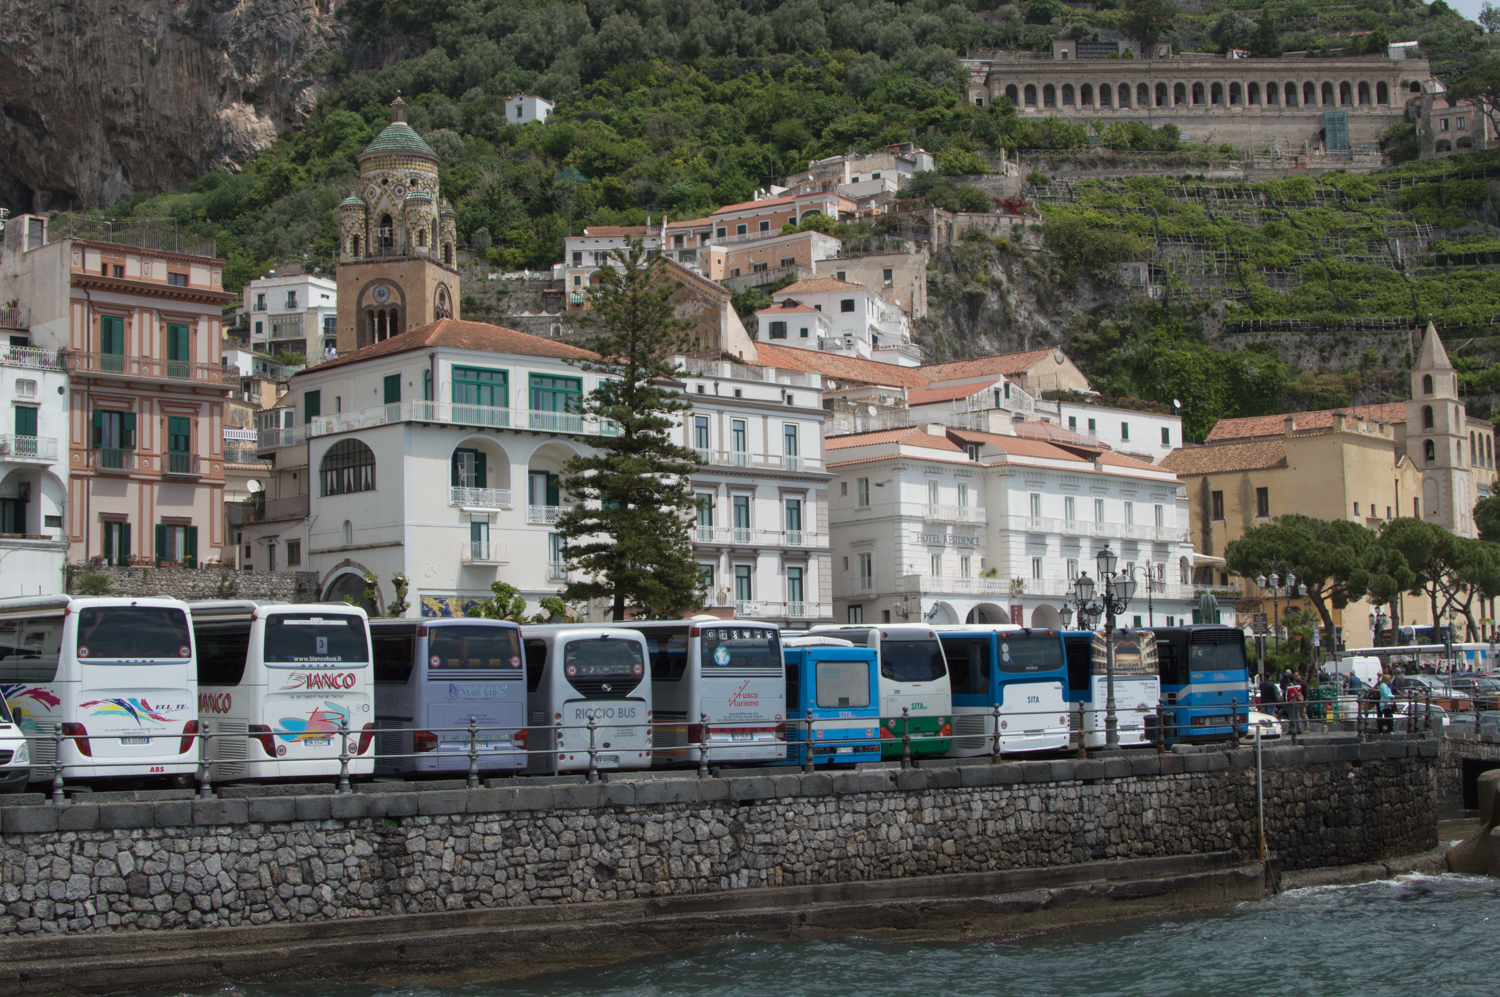 Buses on the Amalfi Coast